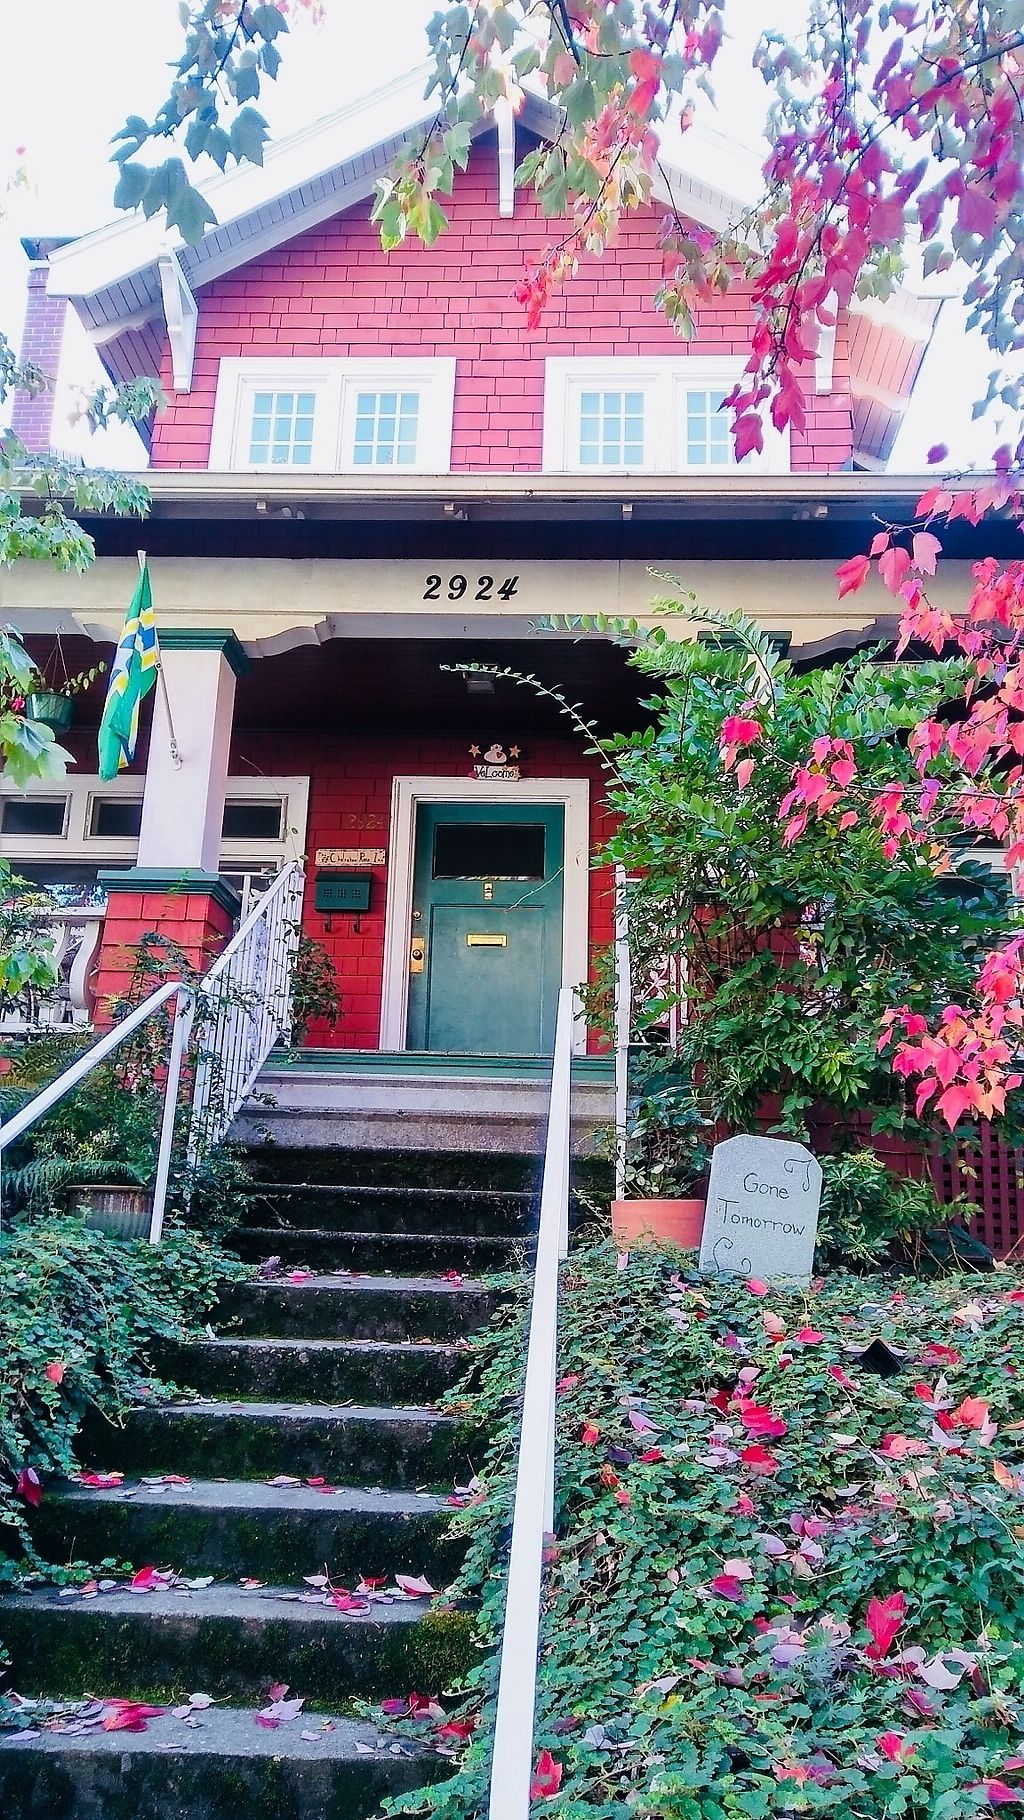 """Photo of The Cherokee Rose Inn  by <a href=""""/members/profile/eveyxvx"""">eveyxvx</a> <br/>So lovely in the fall <br/> October 27, 2017  - <a href='/contact/abuse/image/29423/319279'>Report</a>"""